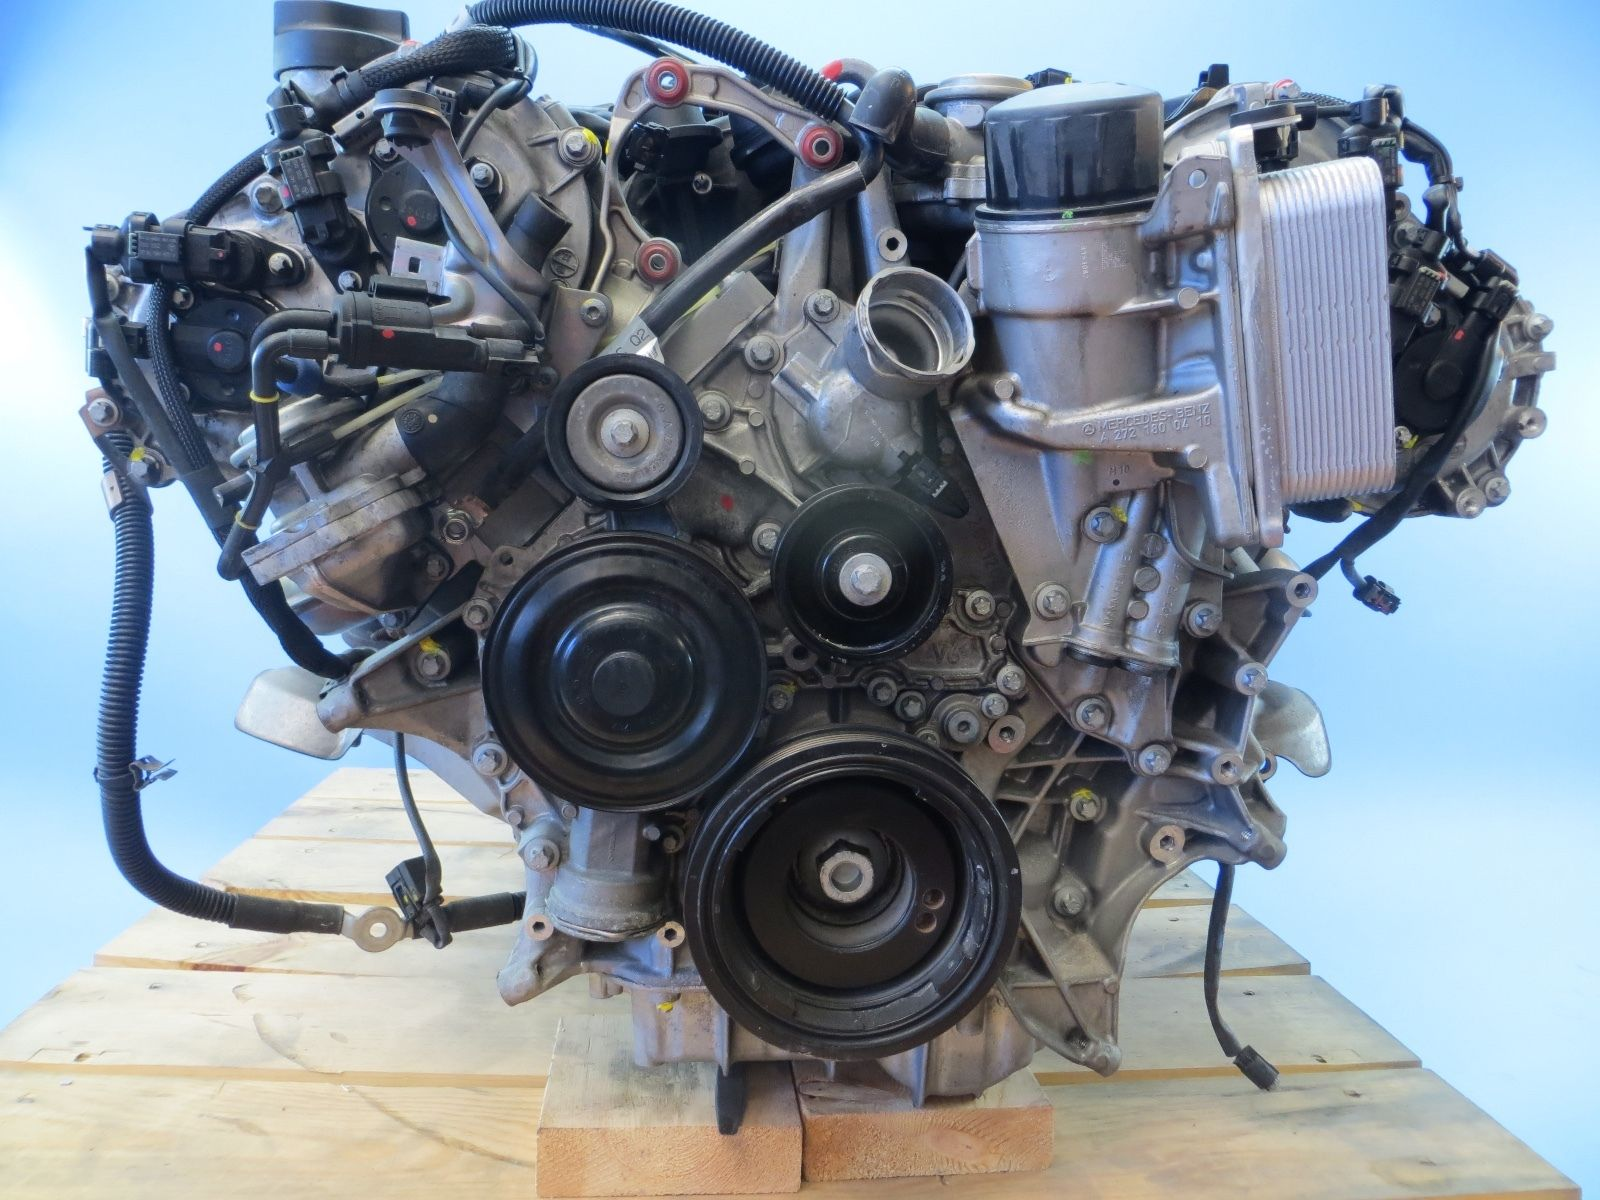 2010 mercedes benz e350 engine assembly v6 3 5l 50 199 for Mercedes benz 3 2 v6 engine